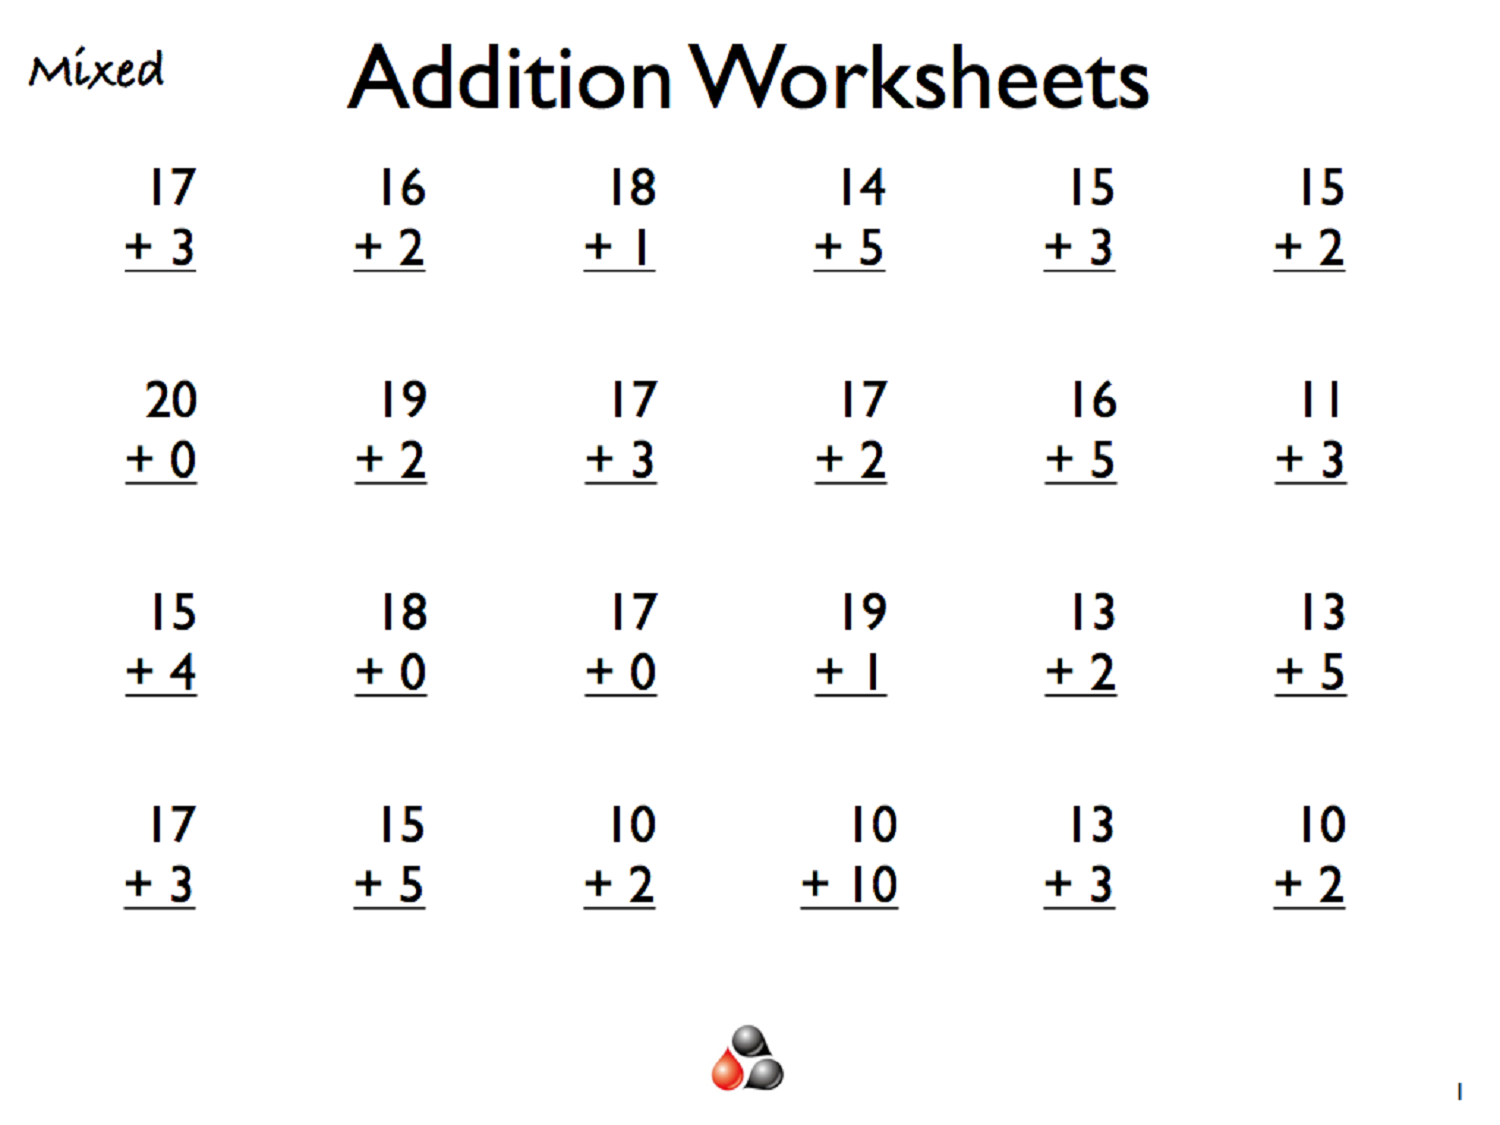 Addition For Worksheets For Grade 1 Is Helpful Educative Media – Grade One Maths Worksheets